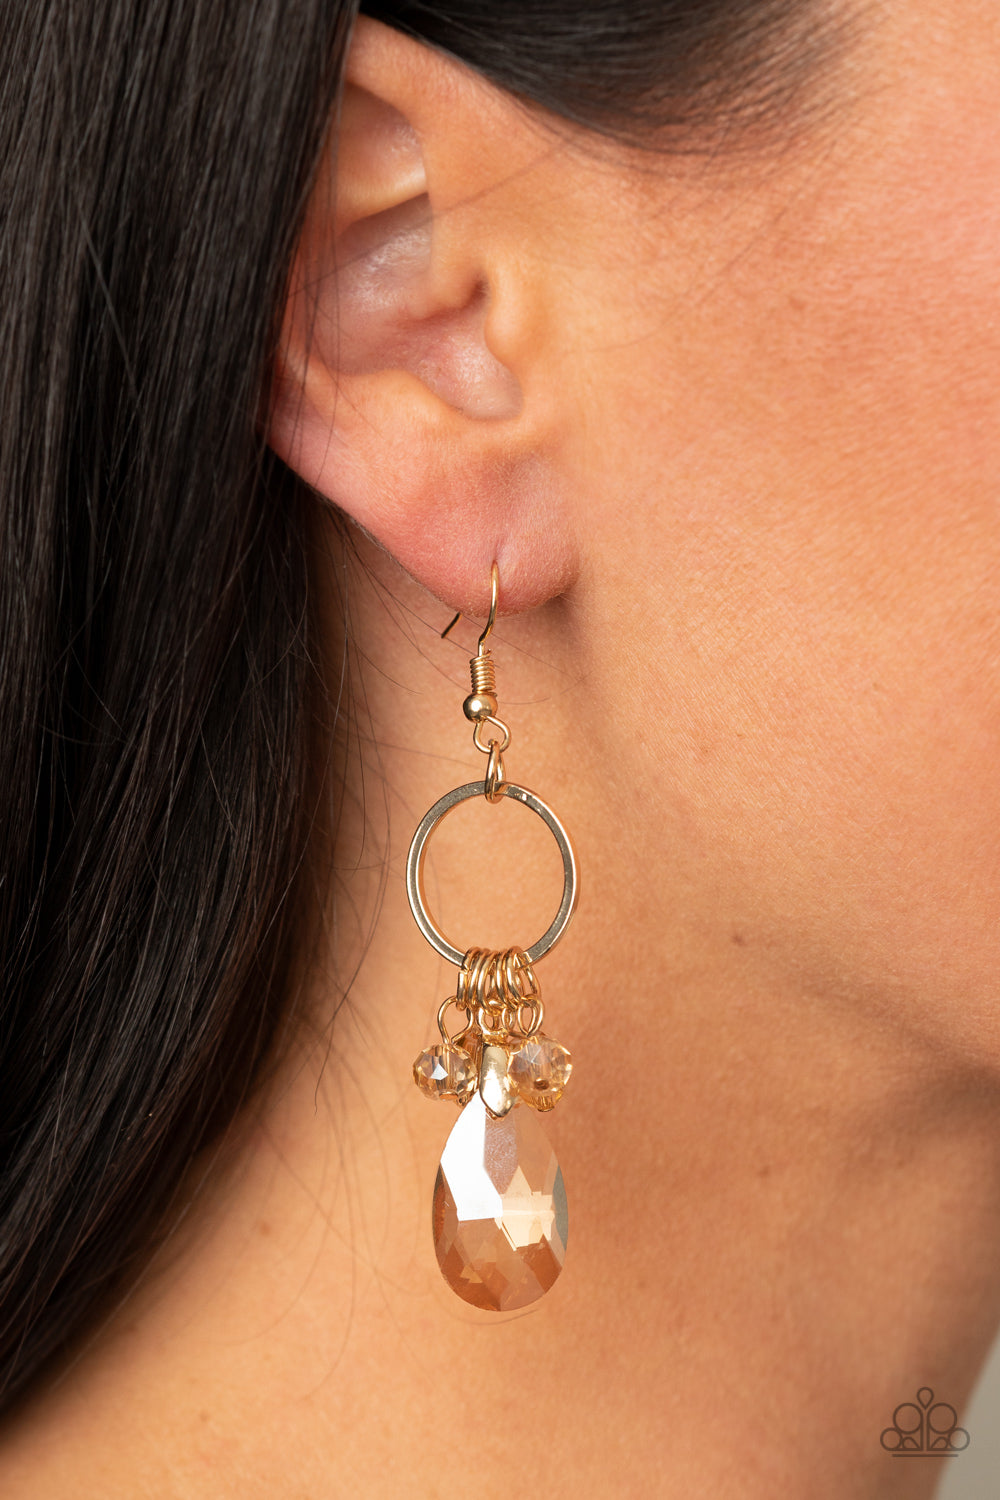 Paparazzi Accessories Unapologetic Glow - Gold Earrings - Lady T Accessories